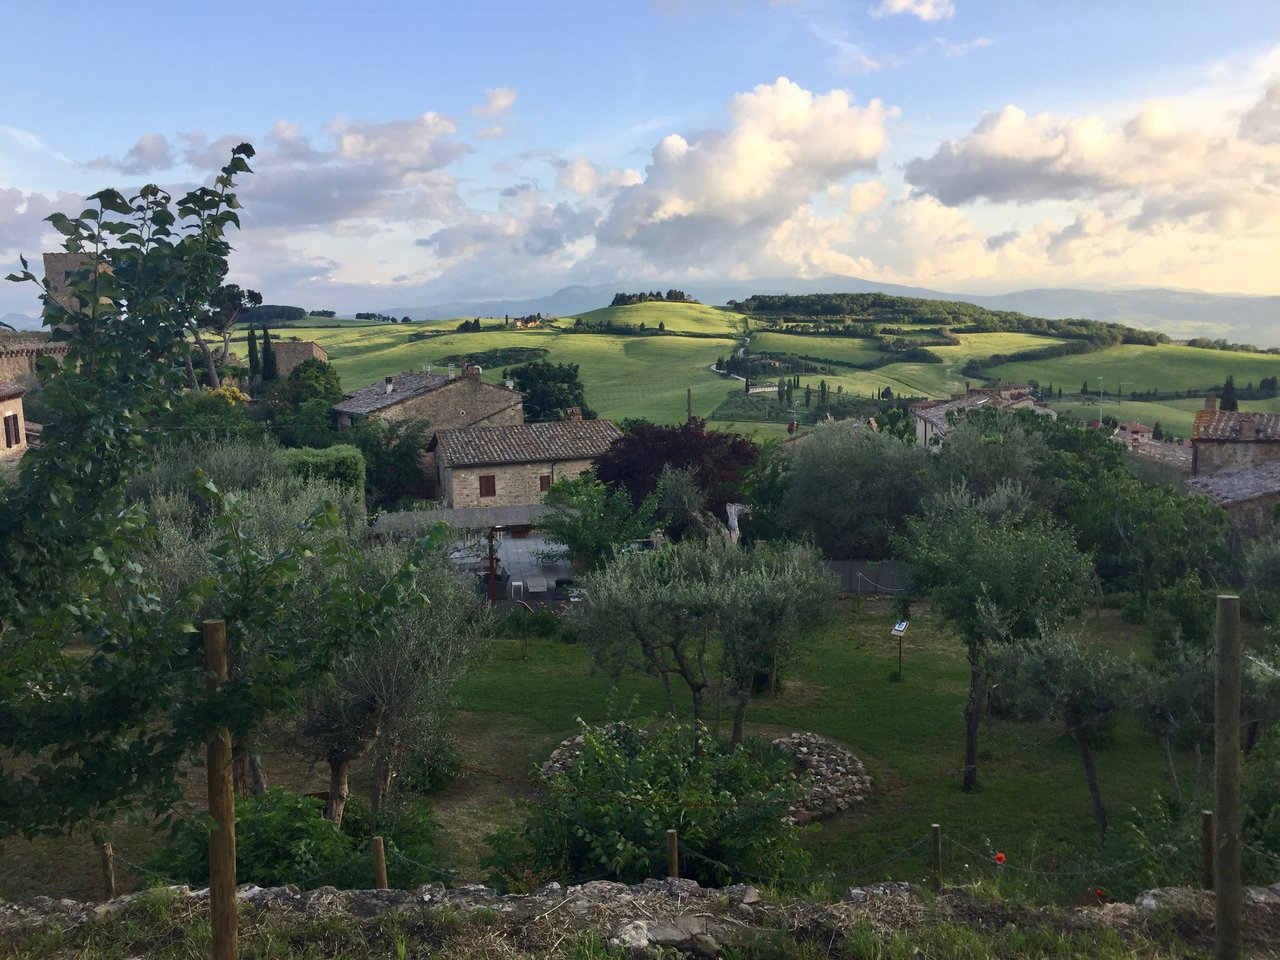 The beautiful Tuscan hills of the Val d'Orcia